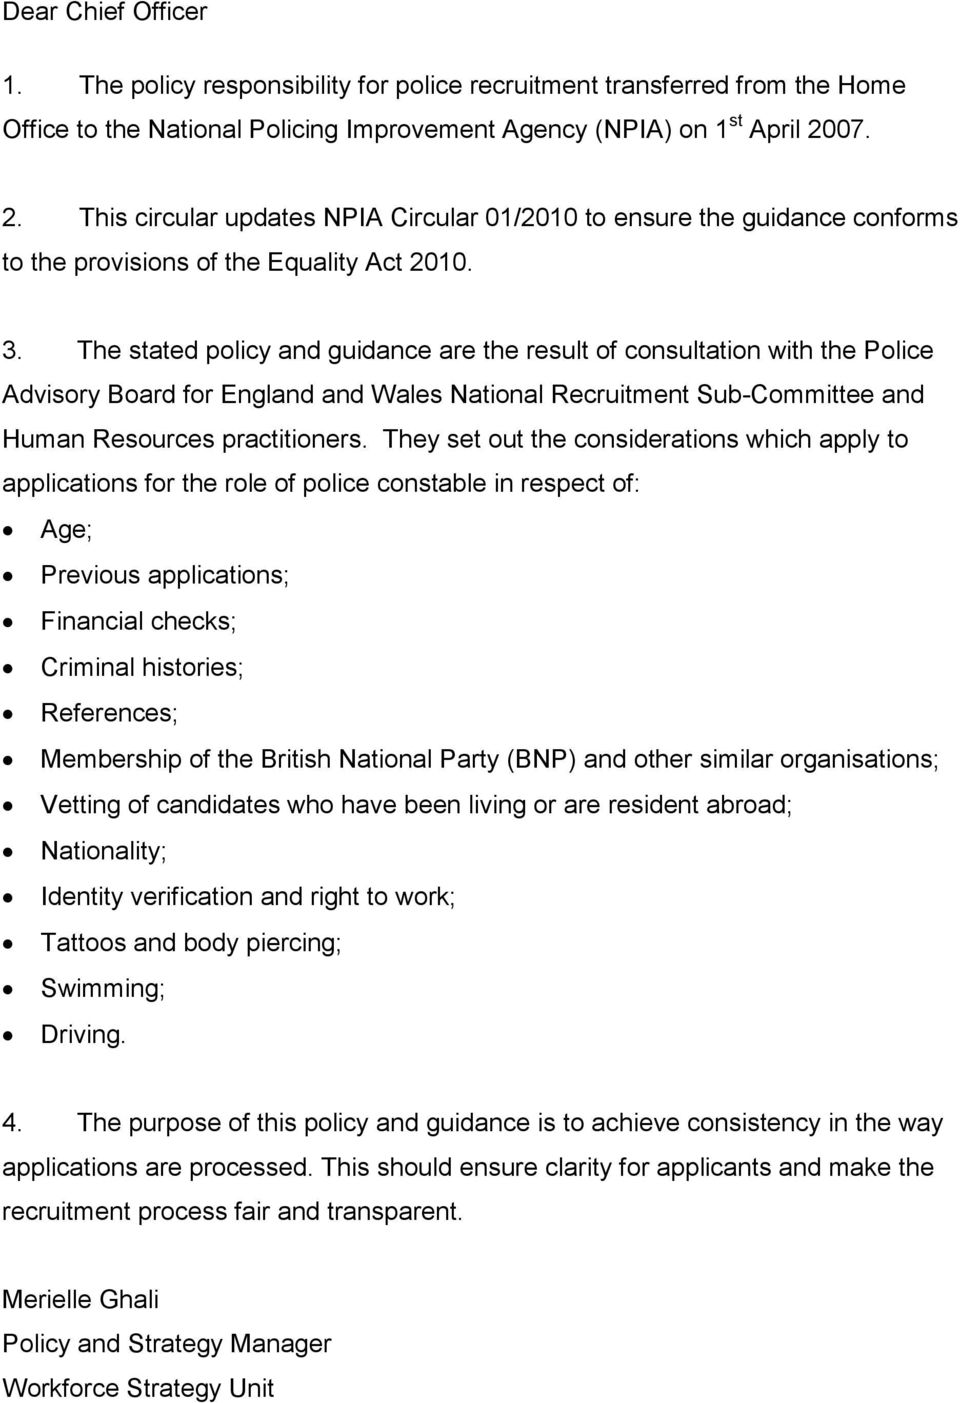 The stated policy and guidance are the result of consultation with the Police Advisory Board for England and Wales National Recruitment Sub-Committee and Human Resources practitioners.